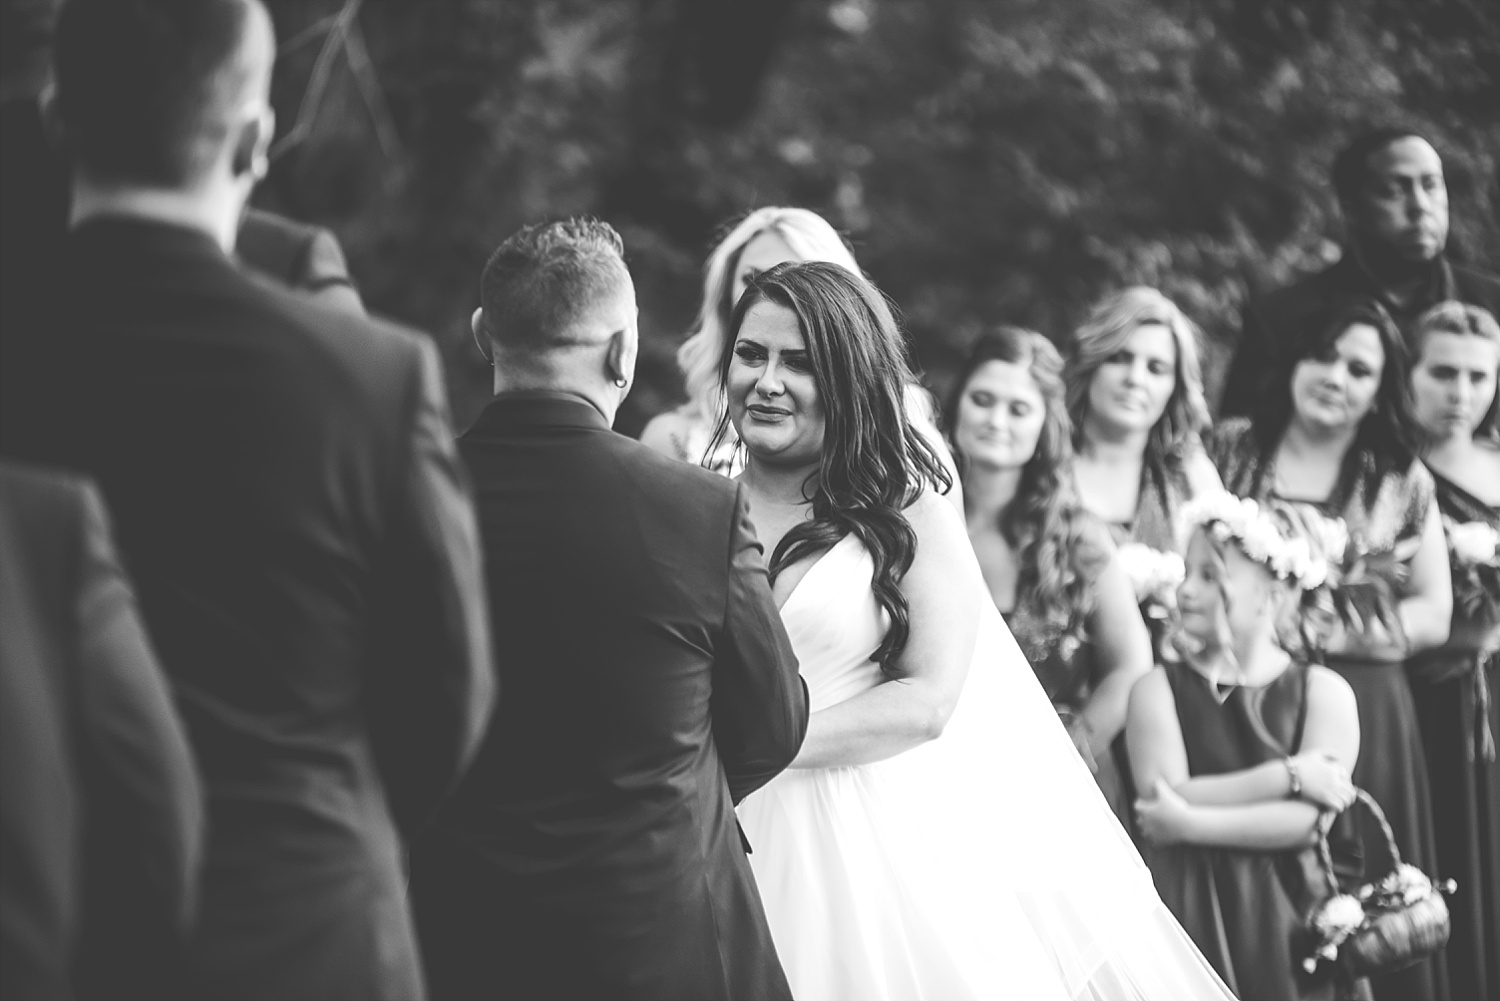 Hannah-cessna-photography-akron-cleveland-ohio-wedding-photograper_0110.jpg